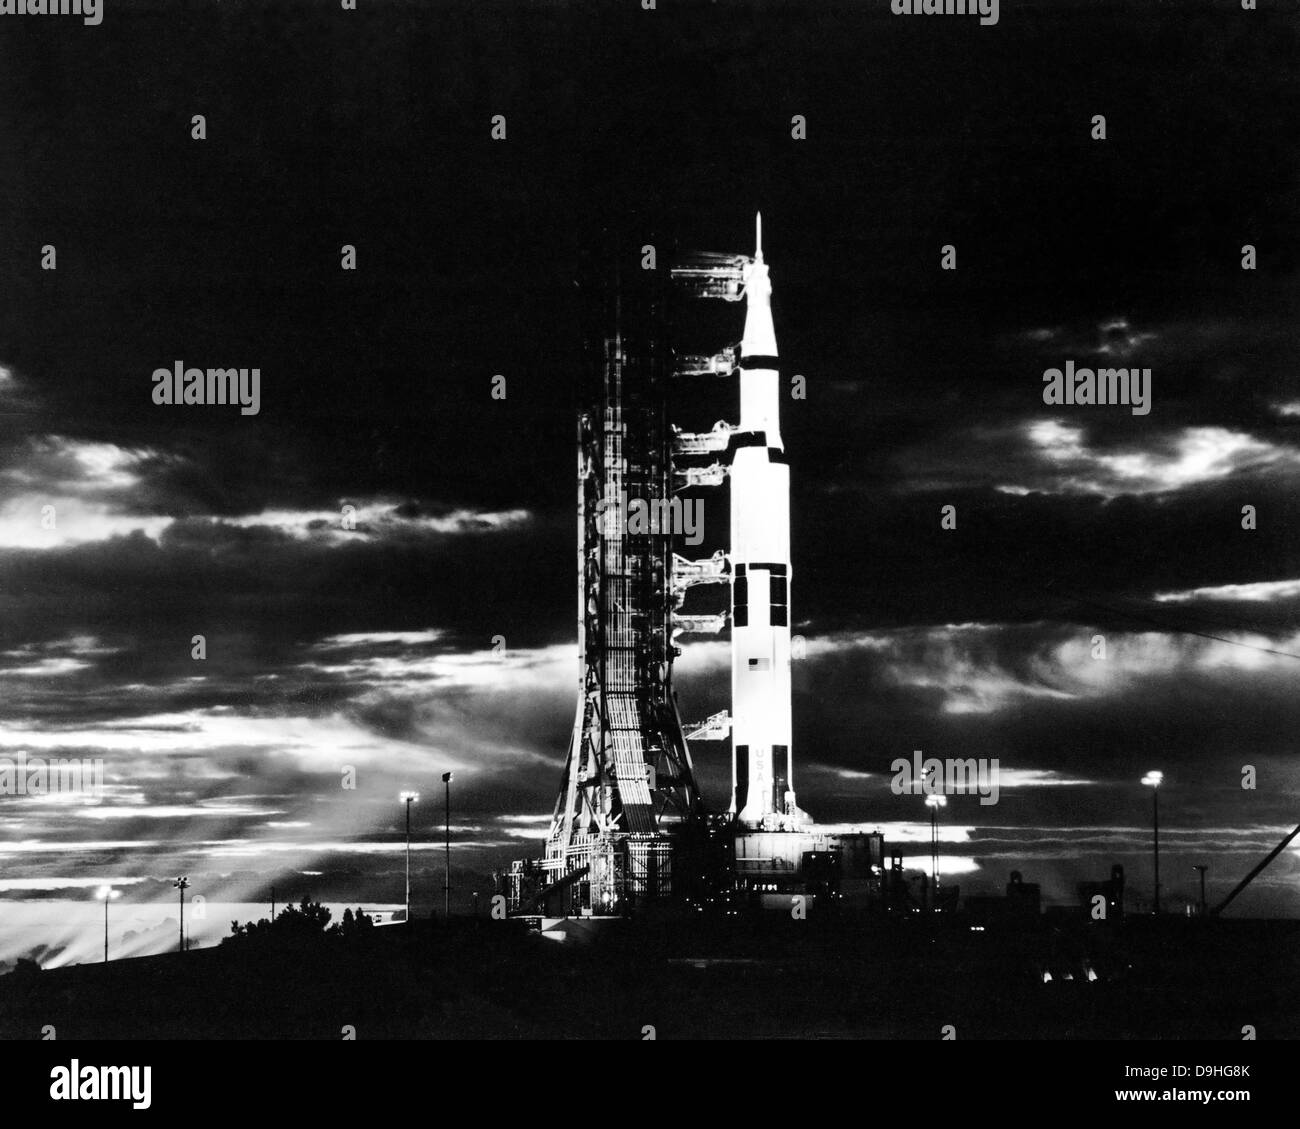 Searchlights illuminate this nighttime view of Apollo 17 spacecraft on its launchpad. - Stock Image